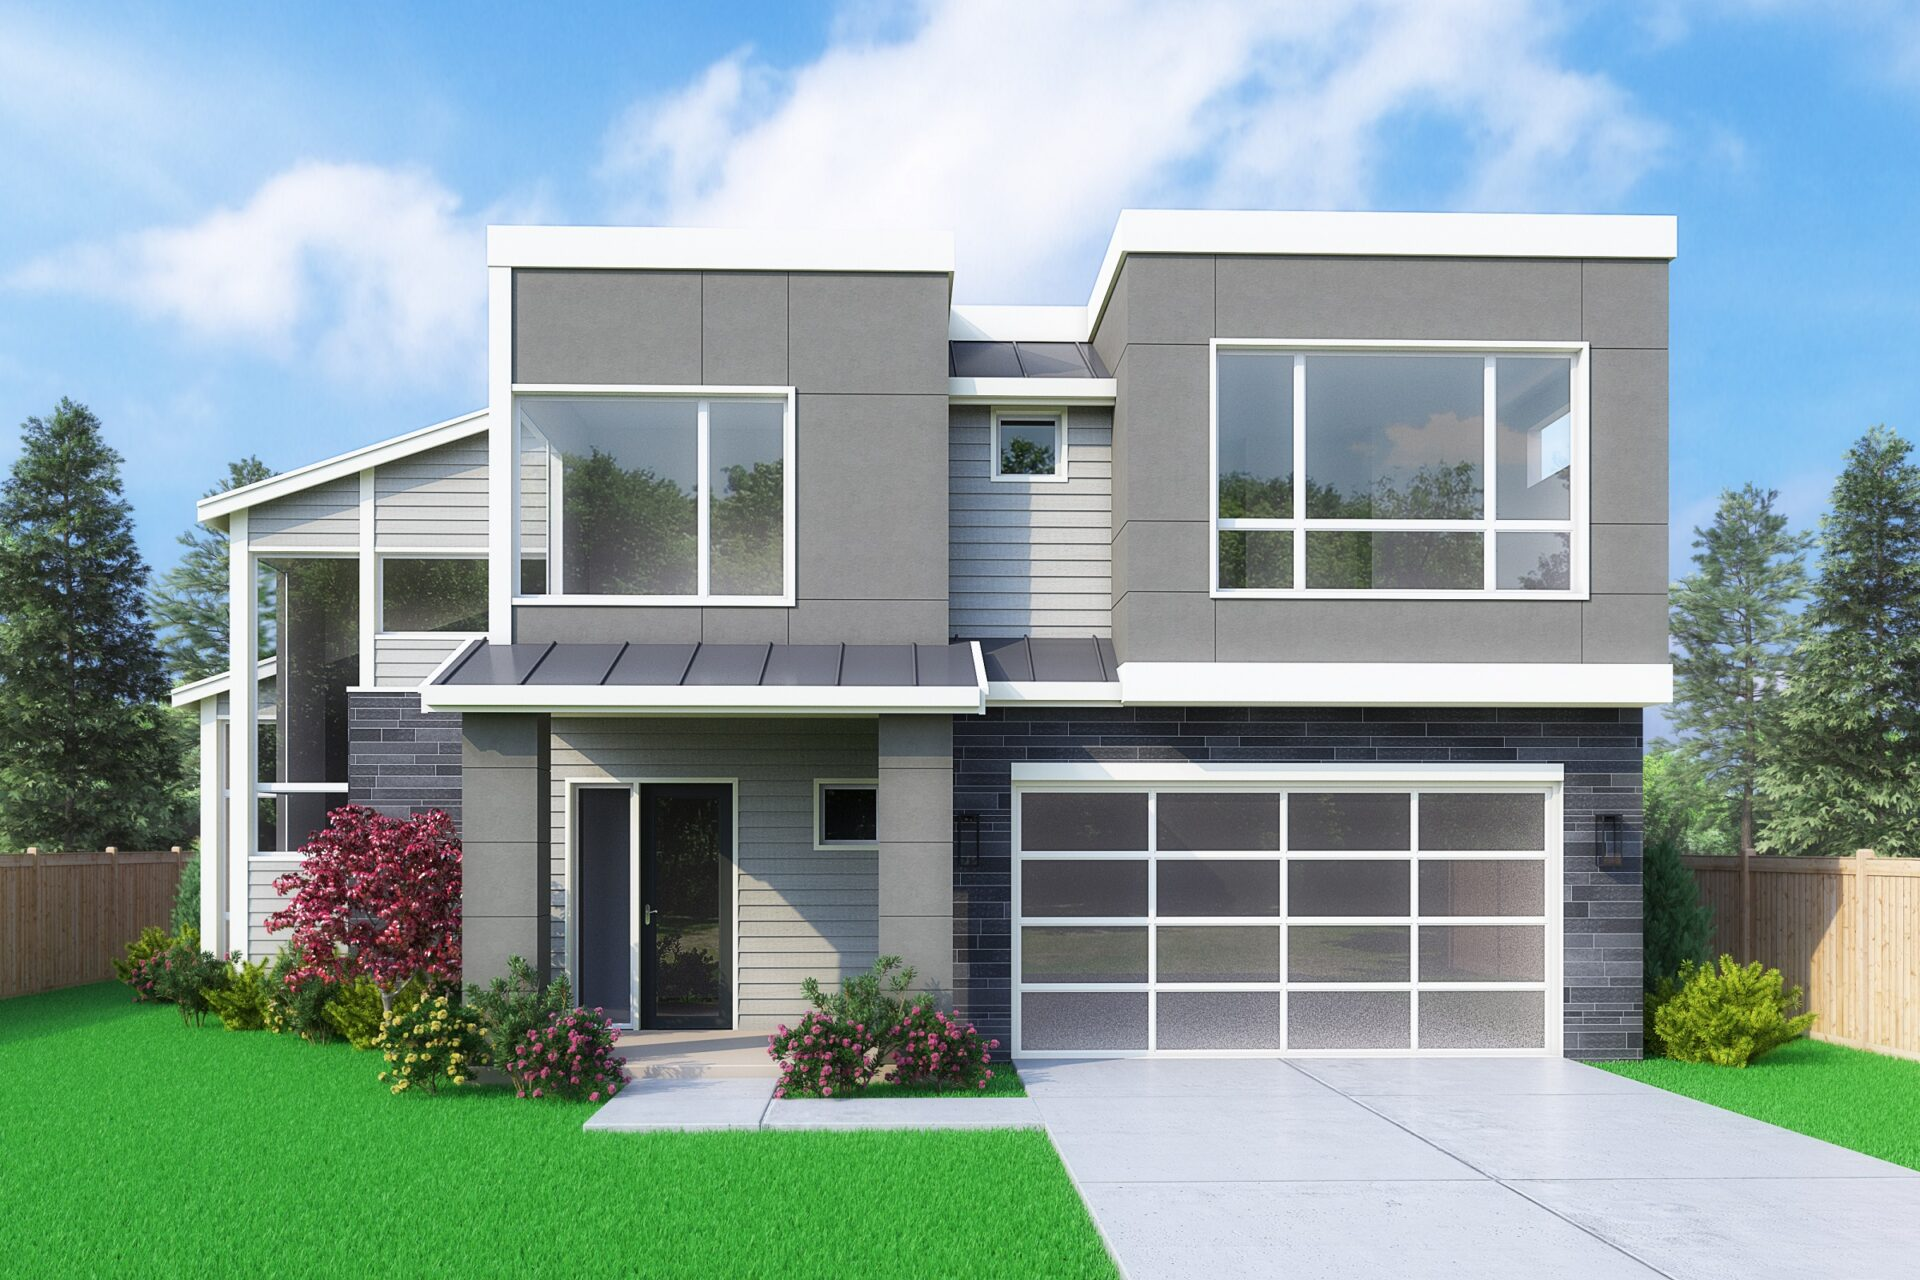 View our new luxury home construction on 534 10th Ave, in Kirkland, WA from MN Custom Homes